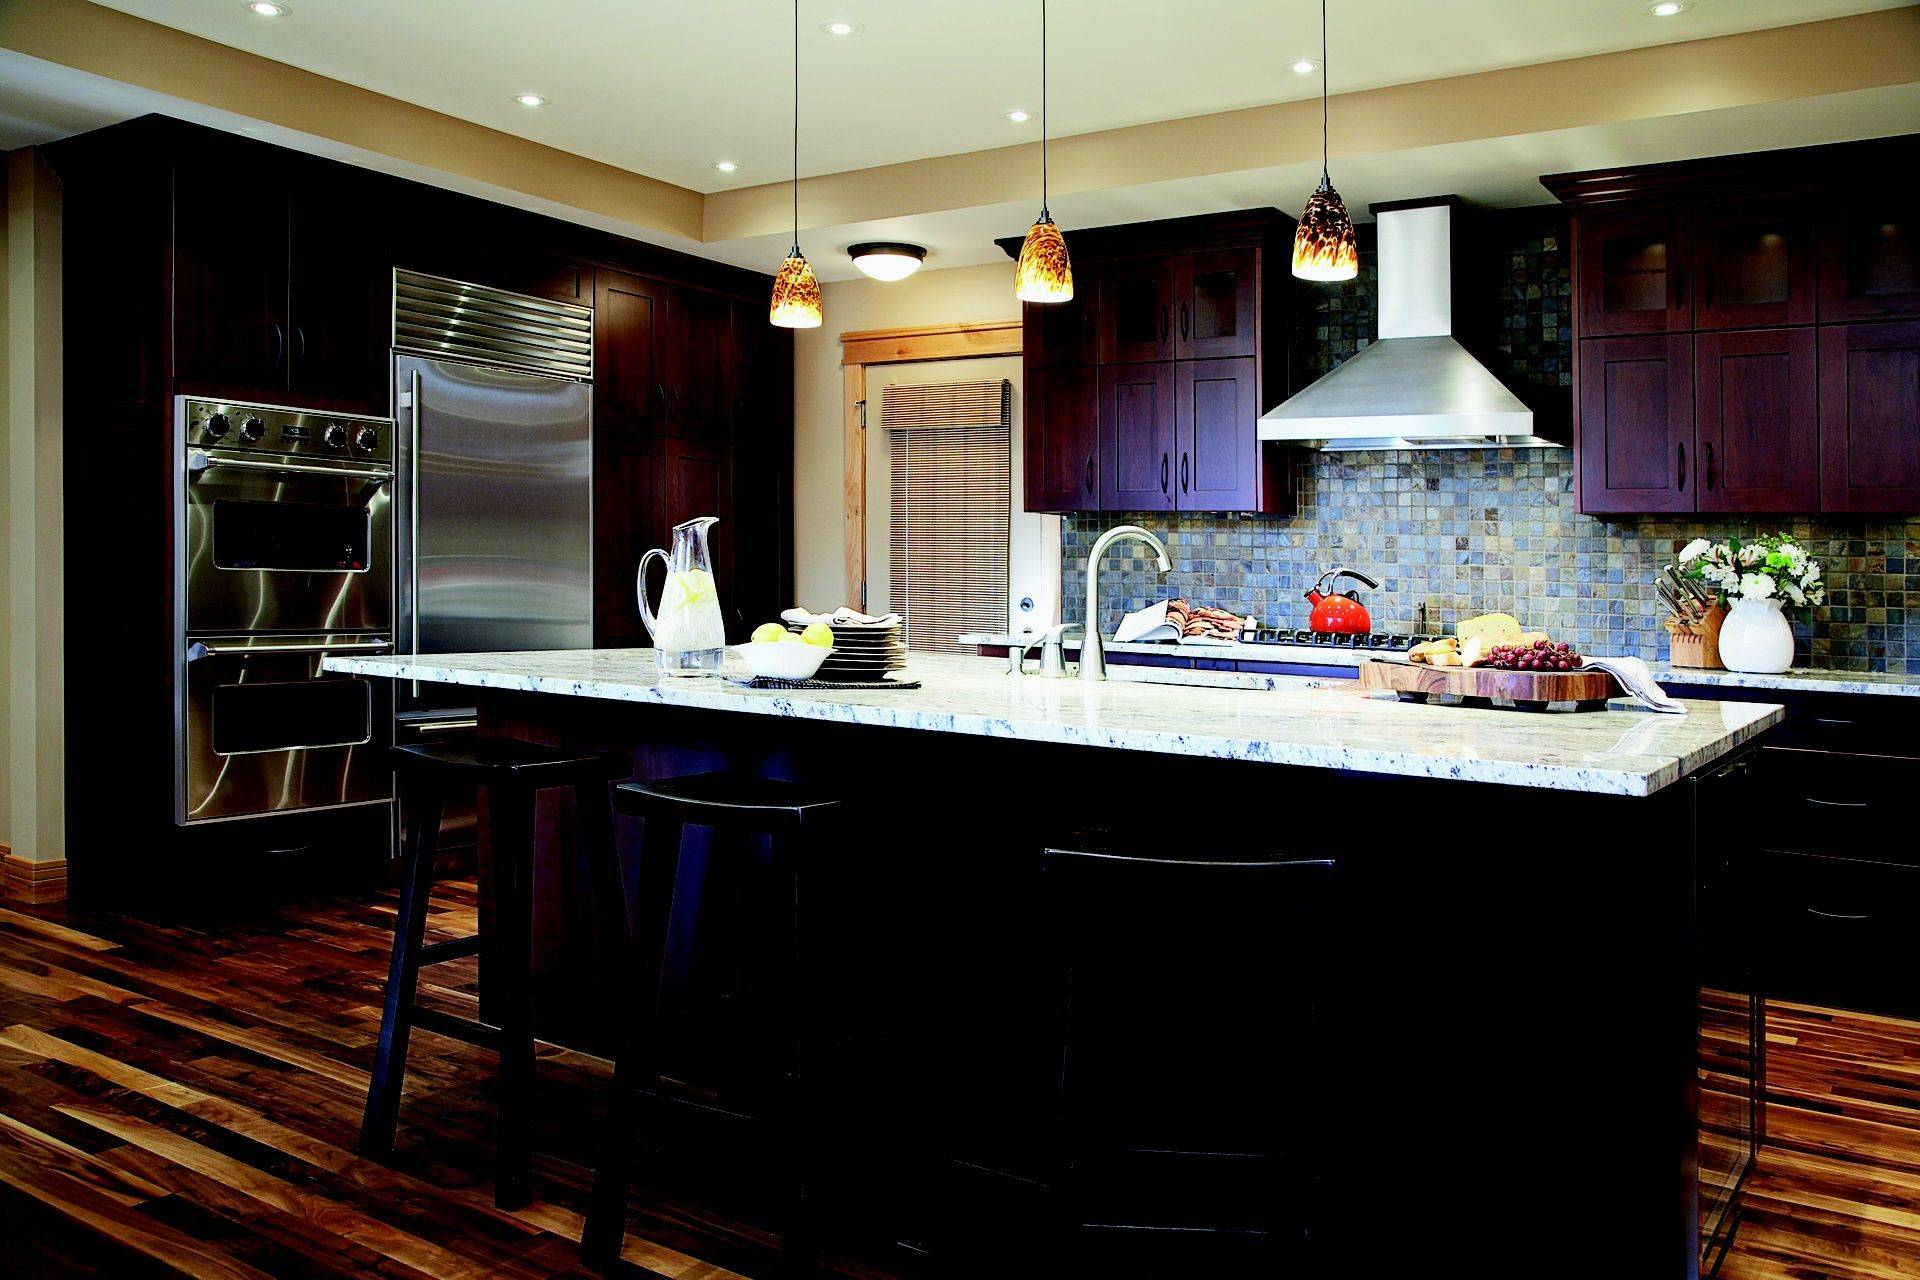 Kitchen remodeling, bathroom remodeling, sinks, faucets, garbage disposals